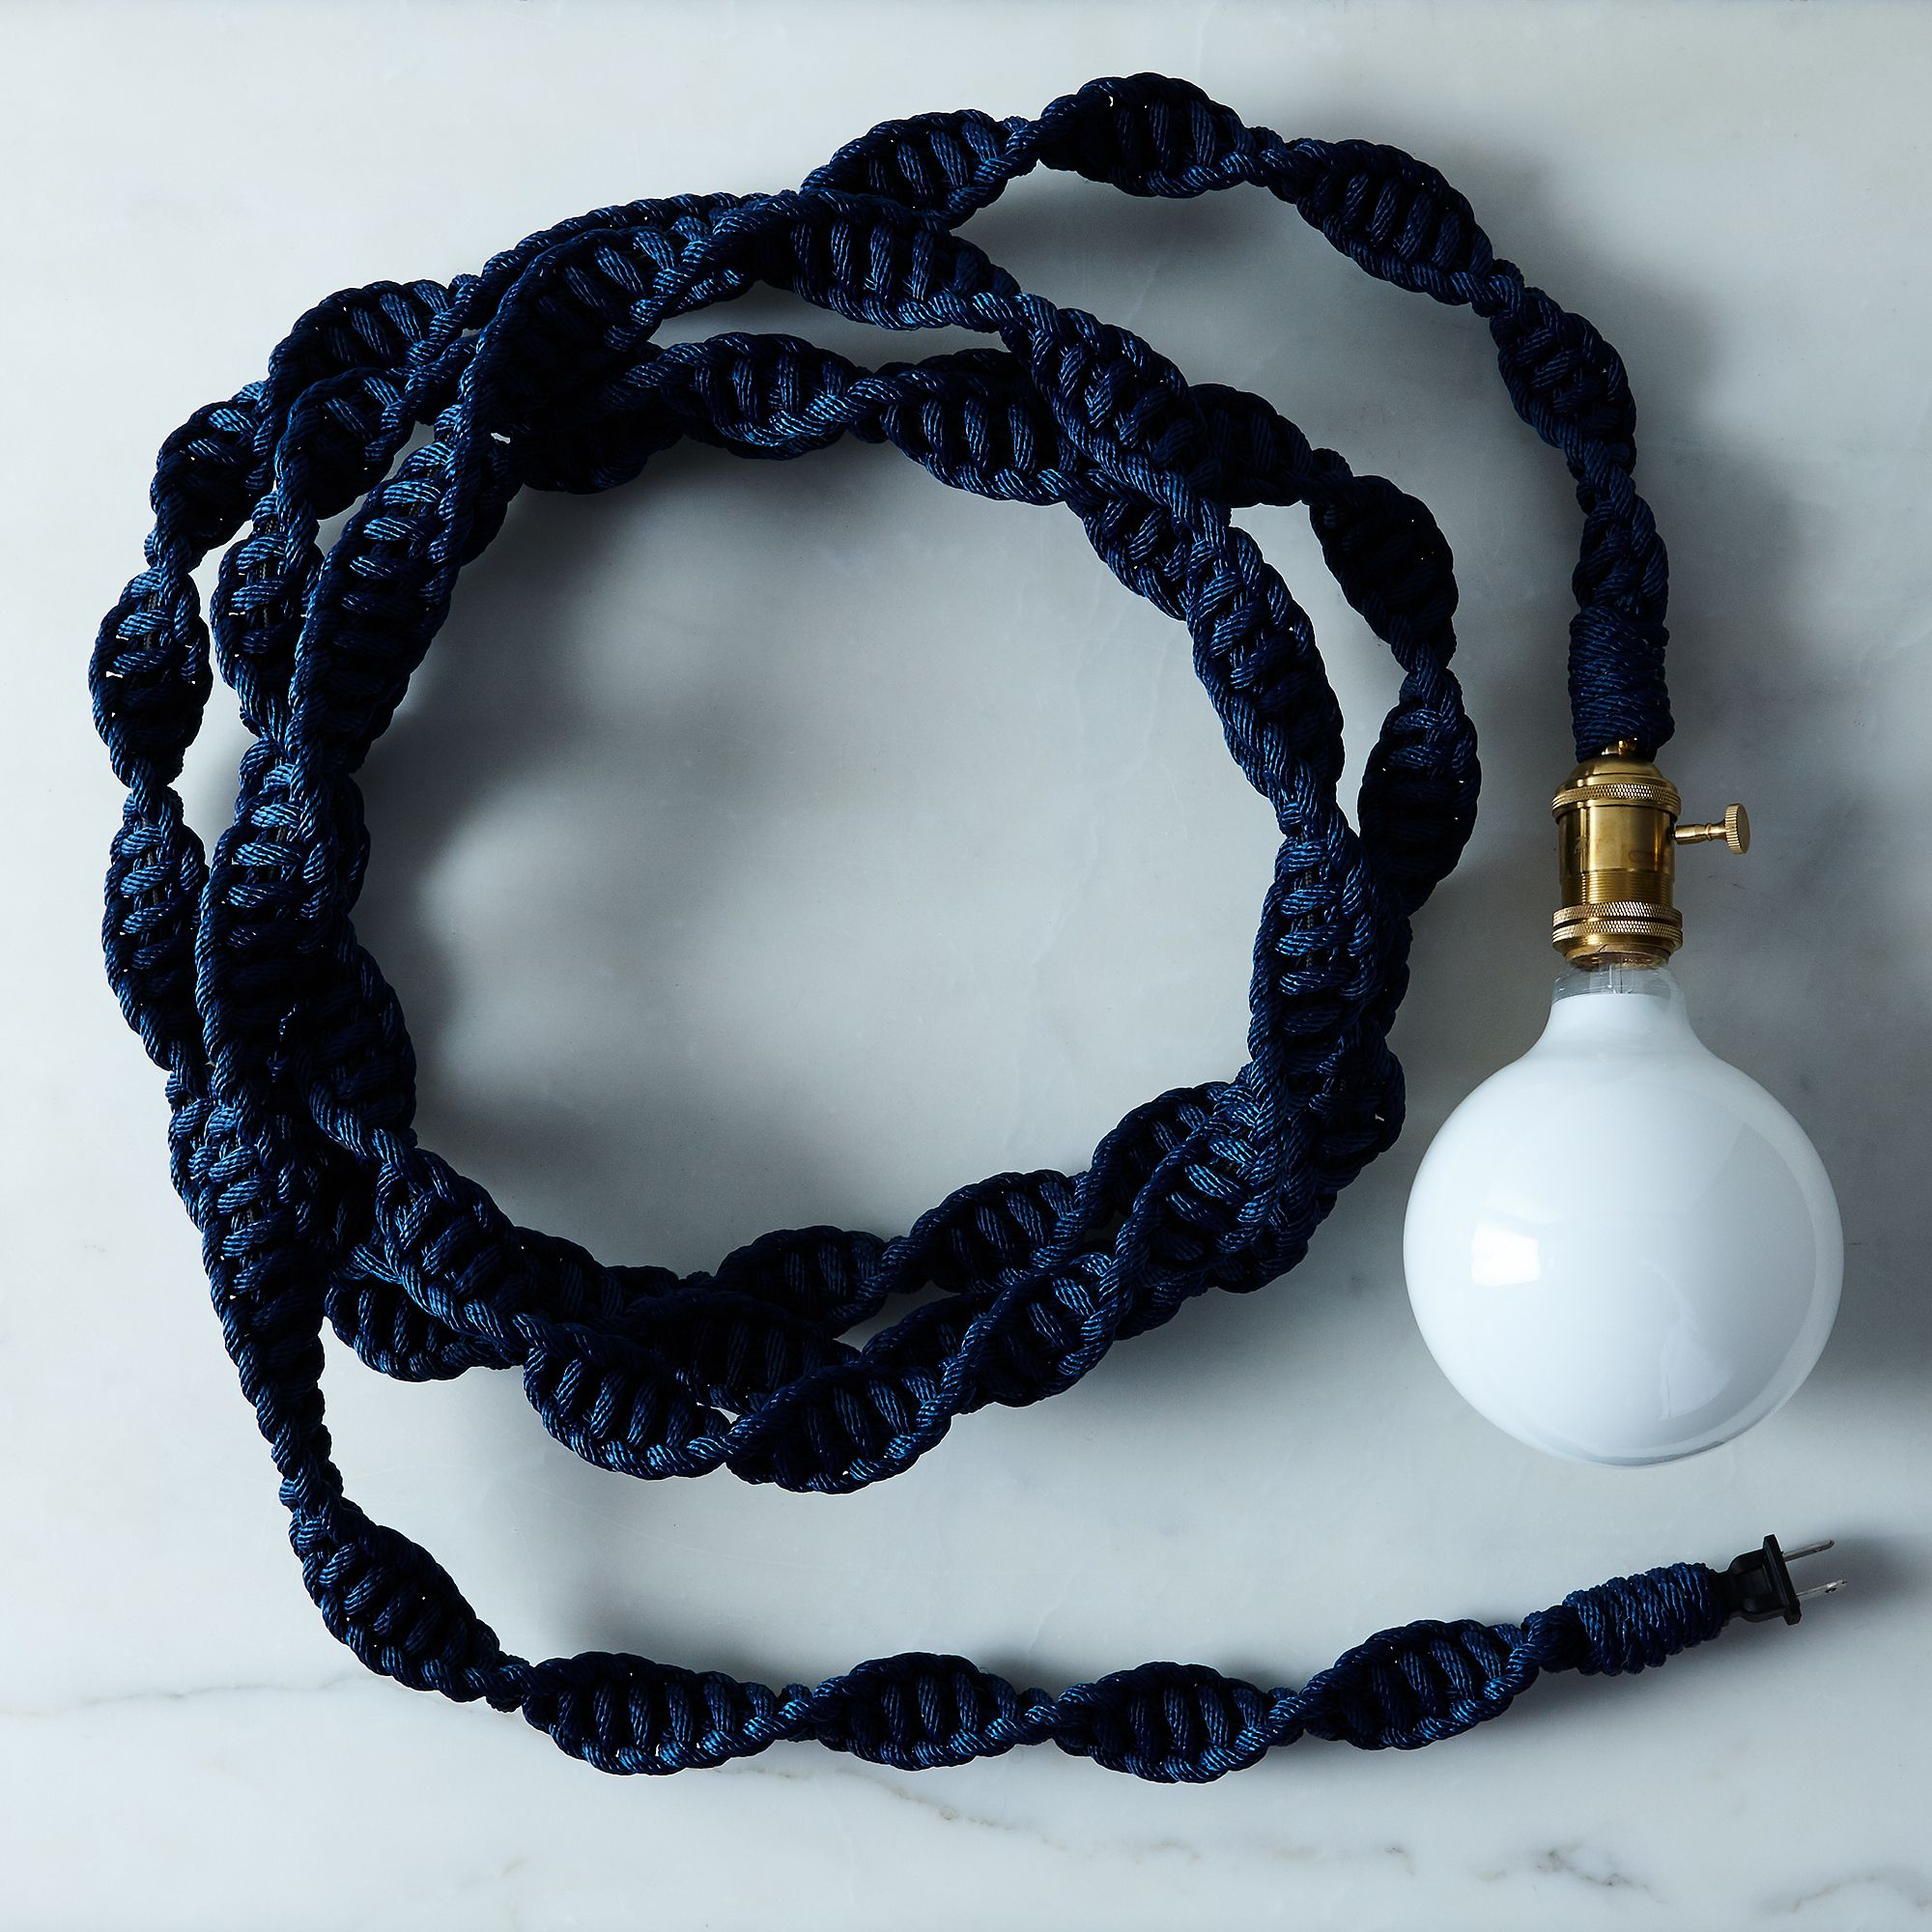 81016554 08f1 4e5a af20 0dd5aa14e69f  2017 0116 windy chien navy and brass pendant light silo rocky luten 8519